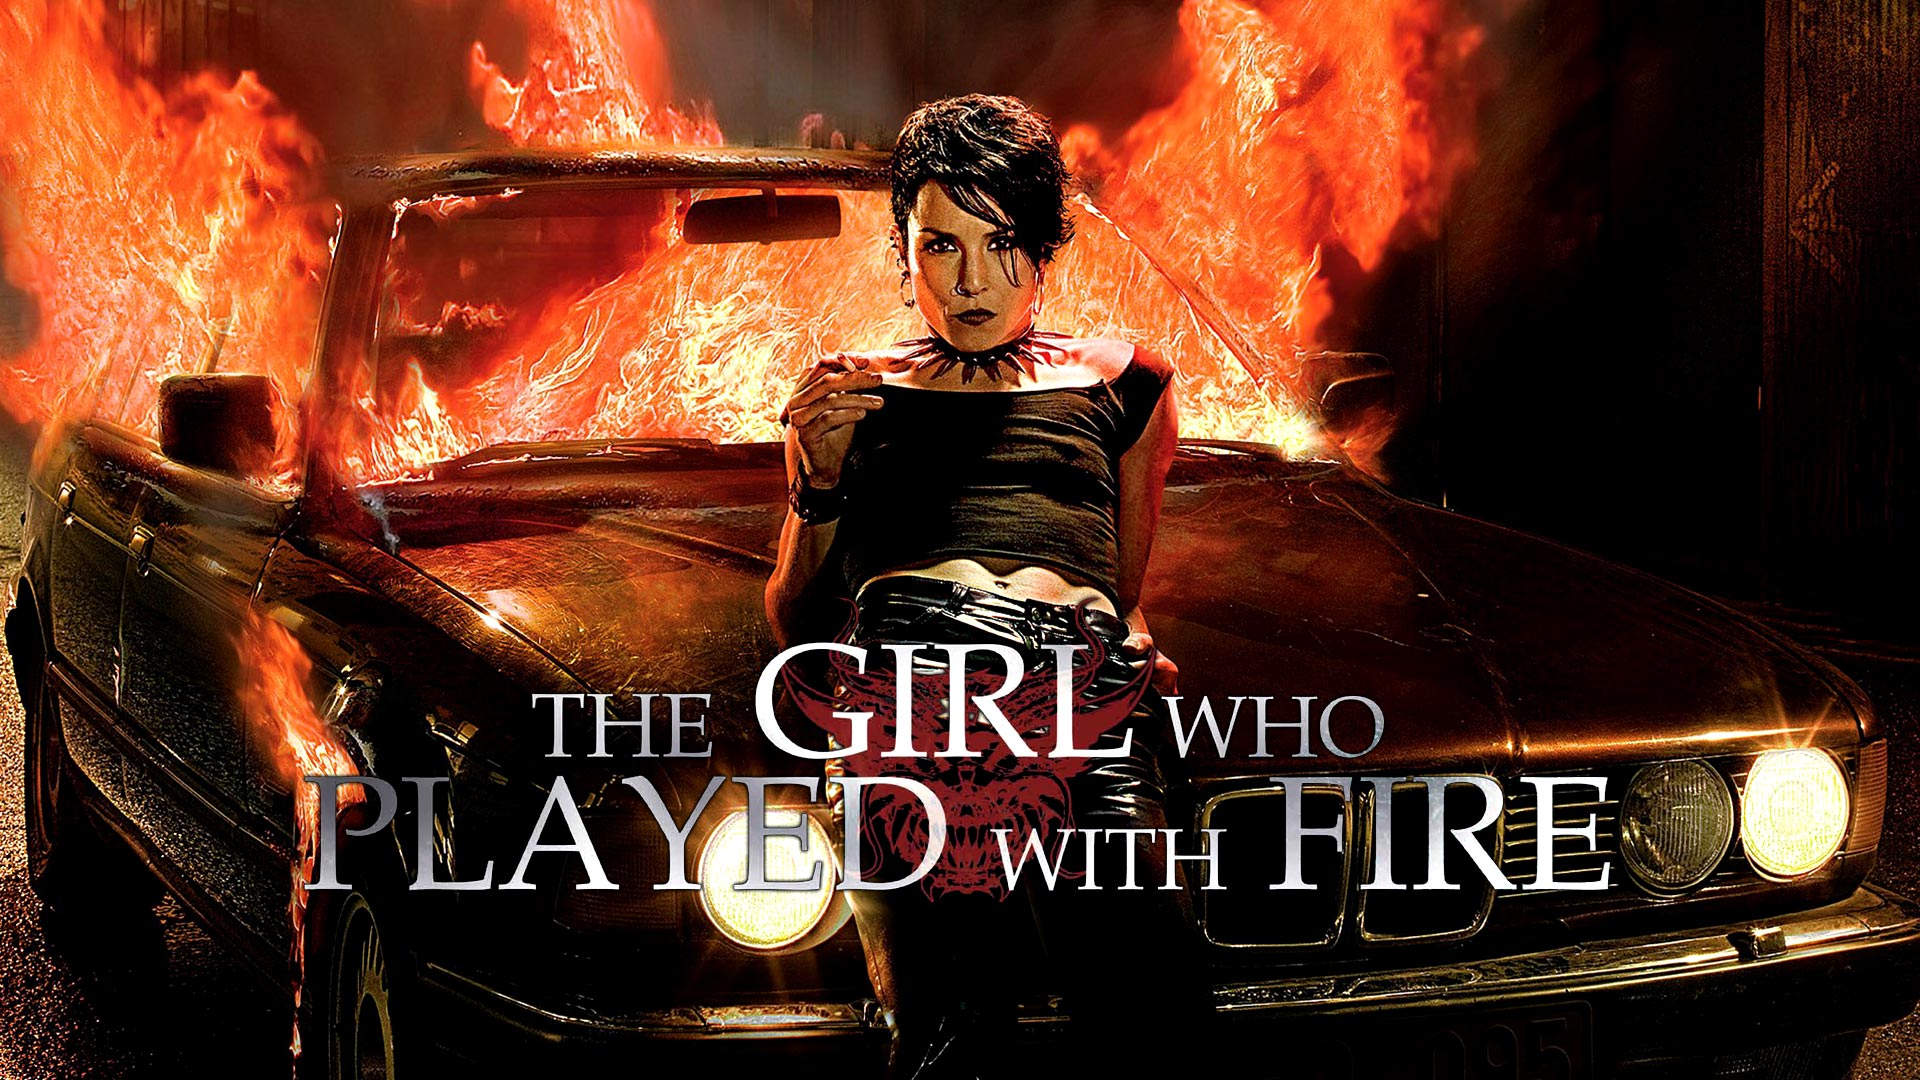 The Girl Who Played With Fire (English Subtitled)